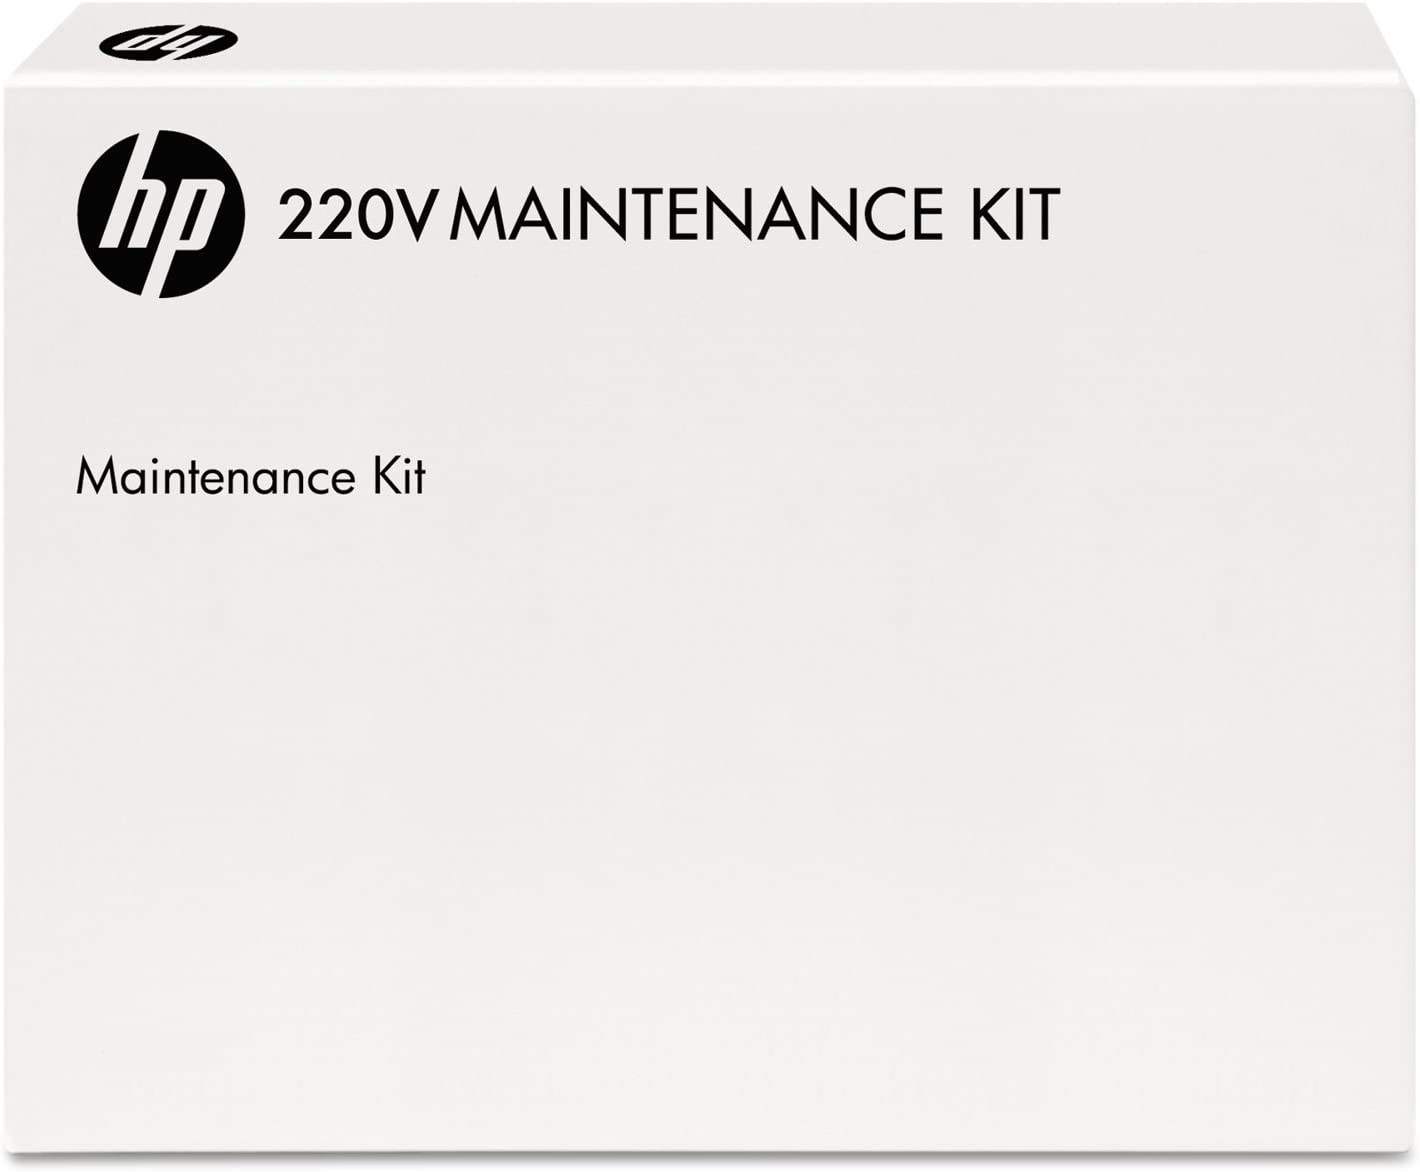 HP Inc. Maintenance Kit -220V Includes fuser assembly, F2G77-67901 (Includes fuser assembly transfer roller, and tray 2 through six roller kit)